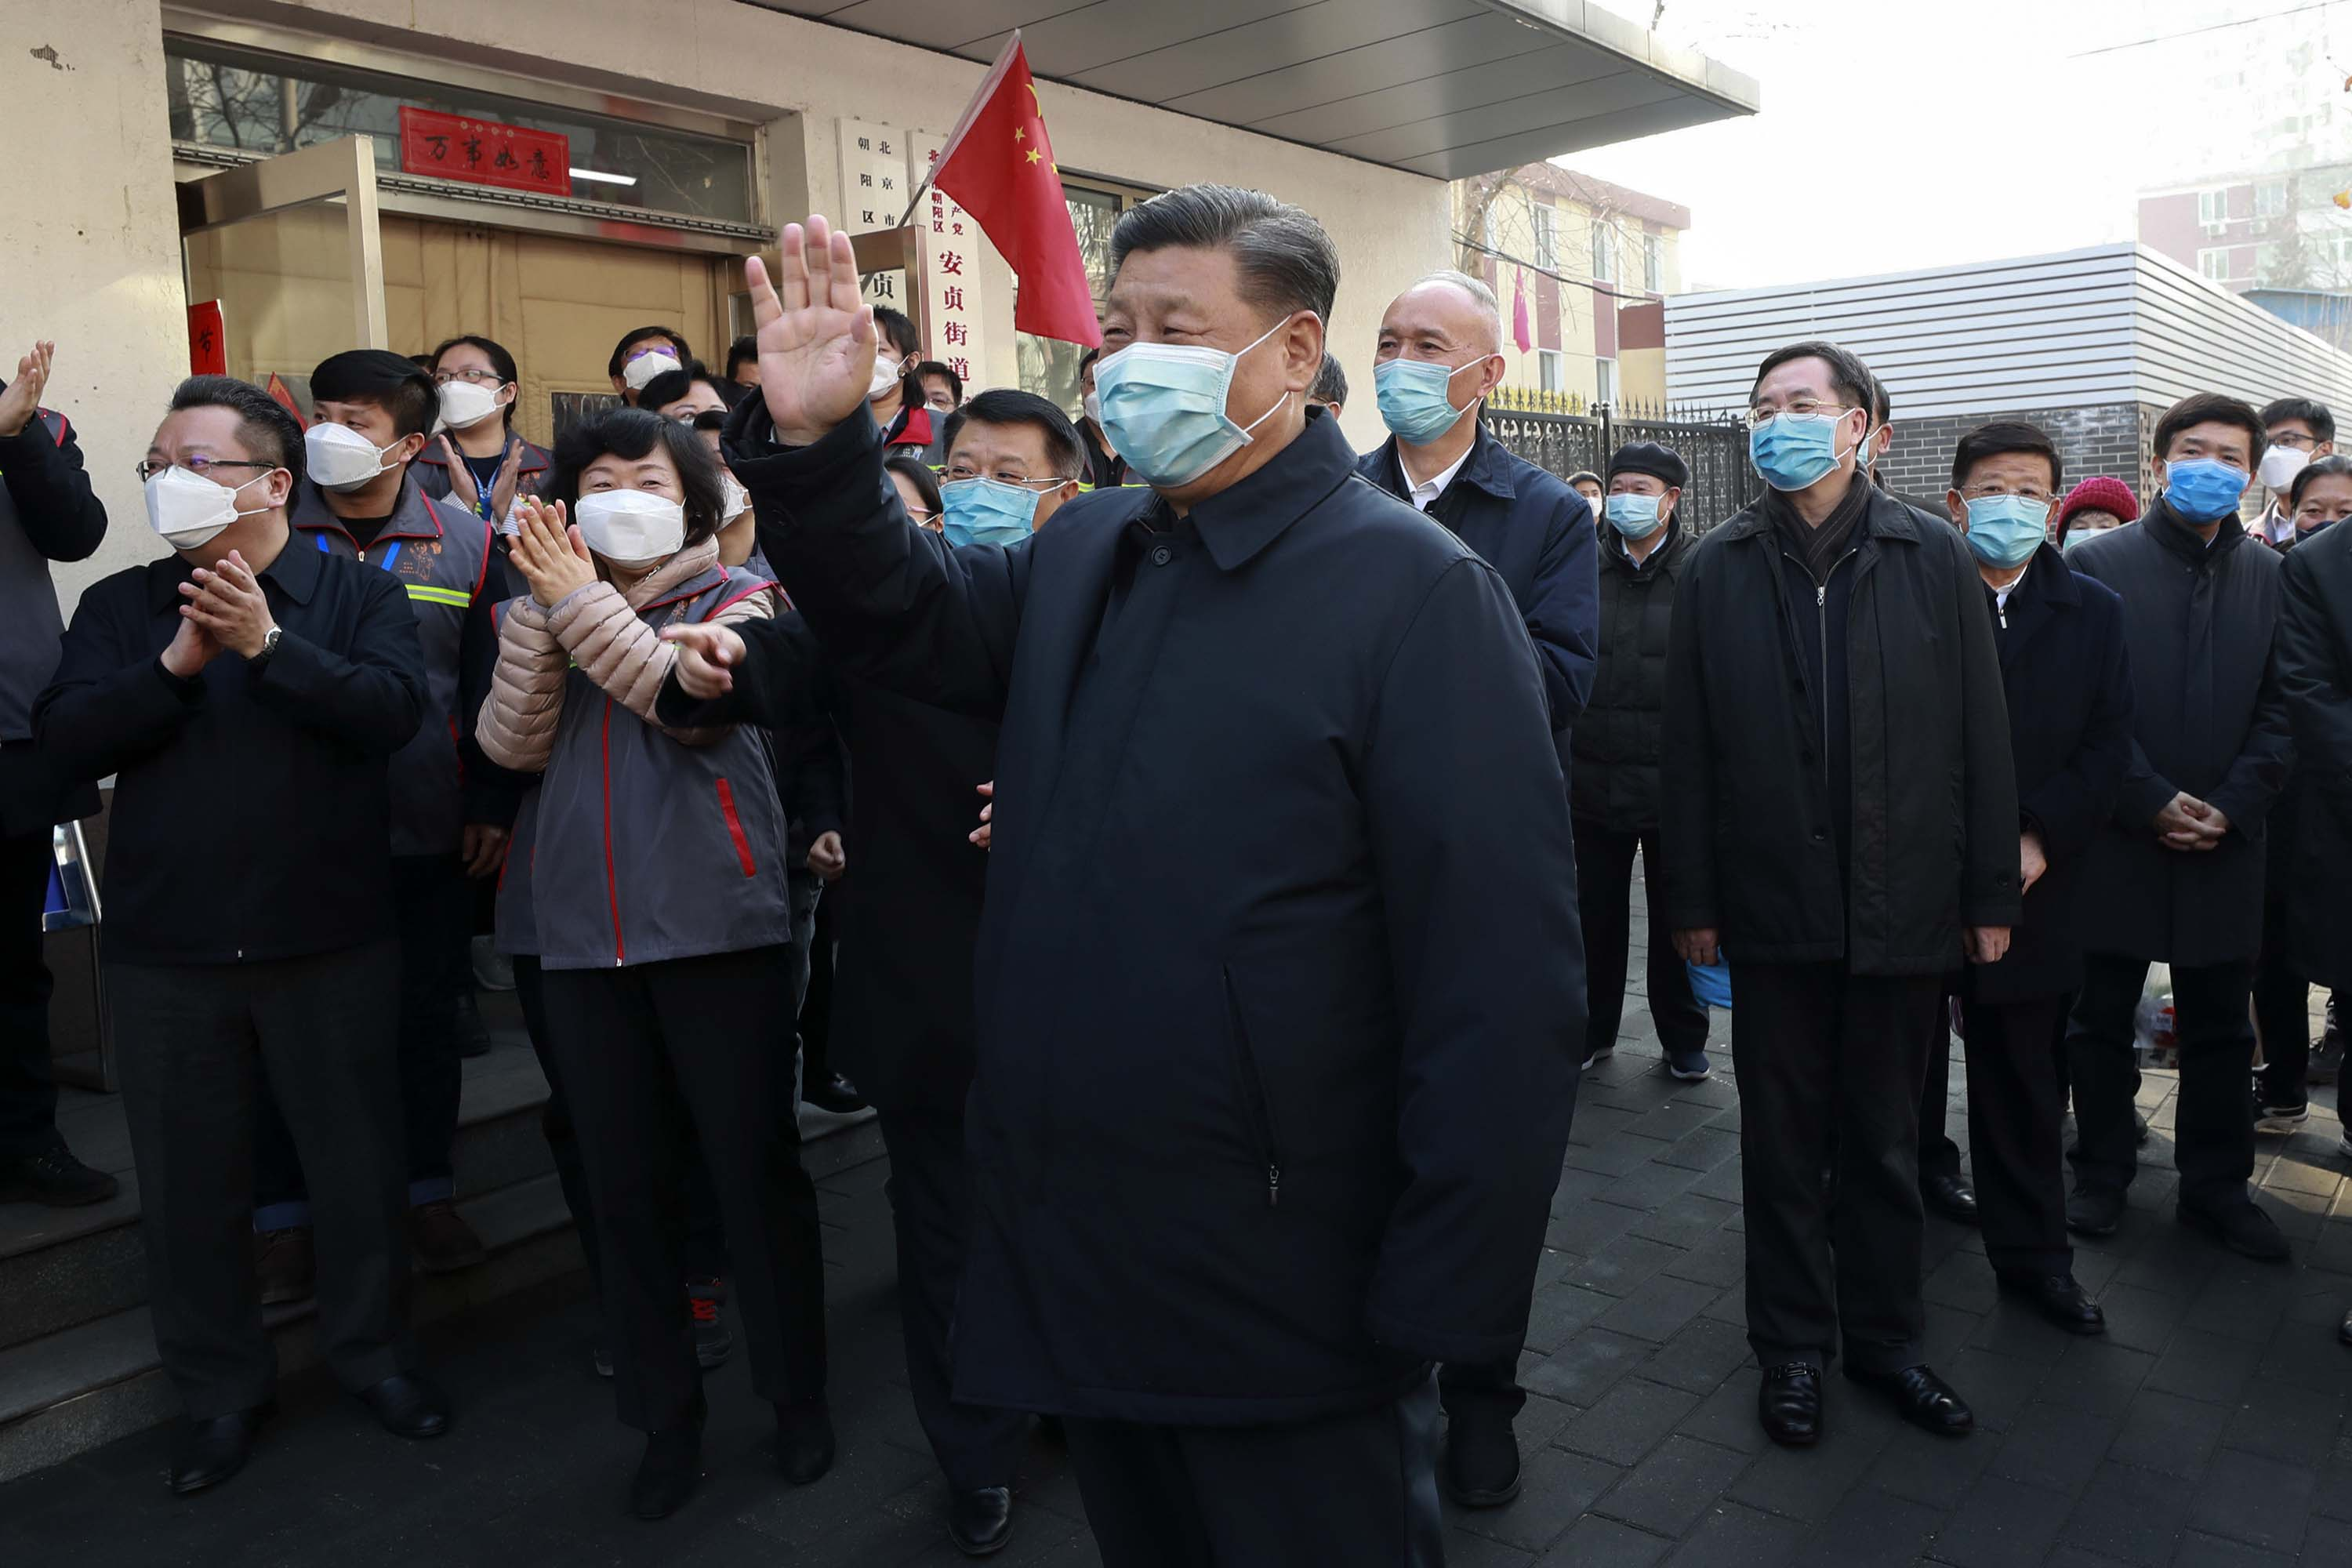 Chinese President Xi Jinping visits a coronavirus prevention site in Beijing on February 10 -- his first public appearance during the outbreak.